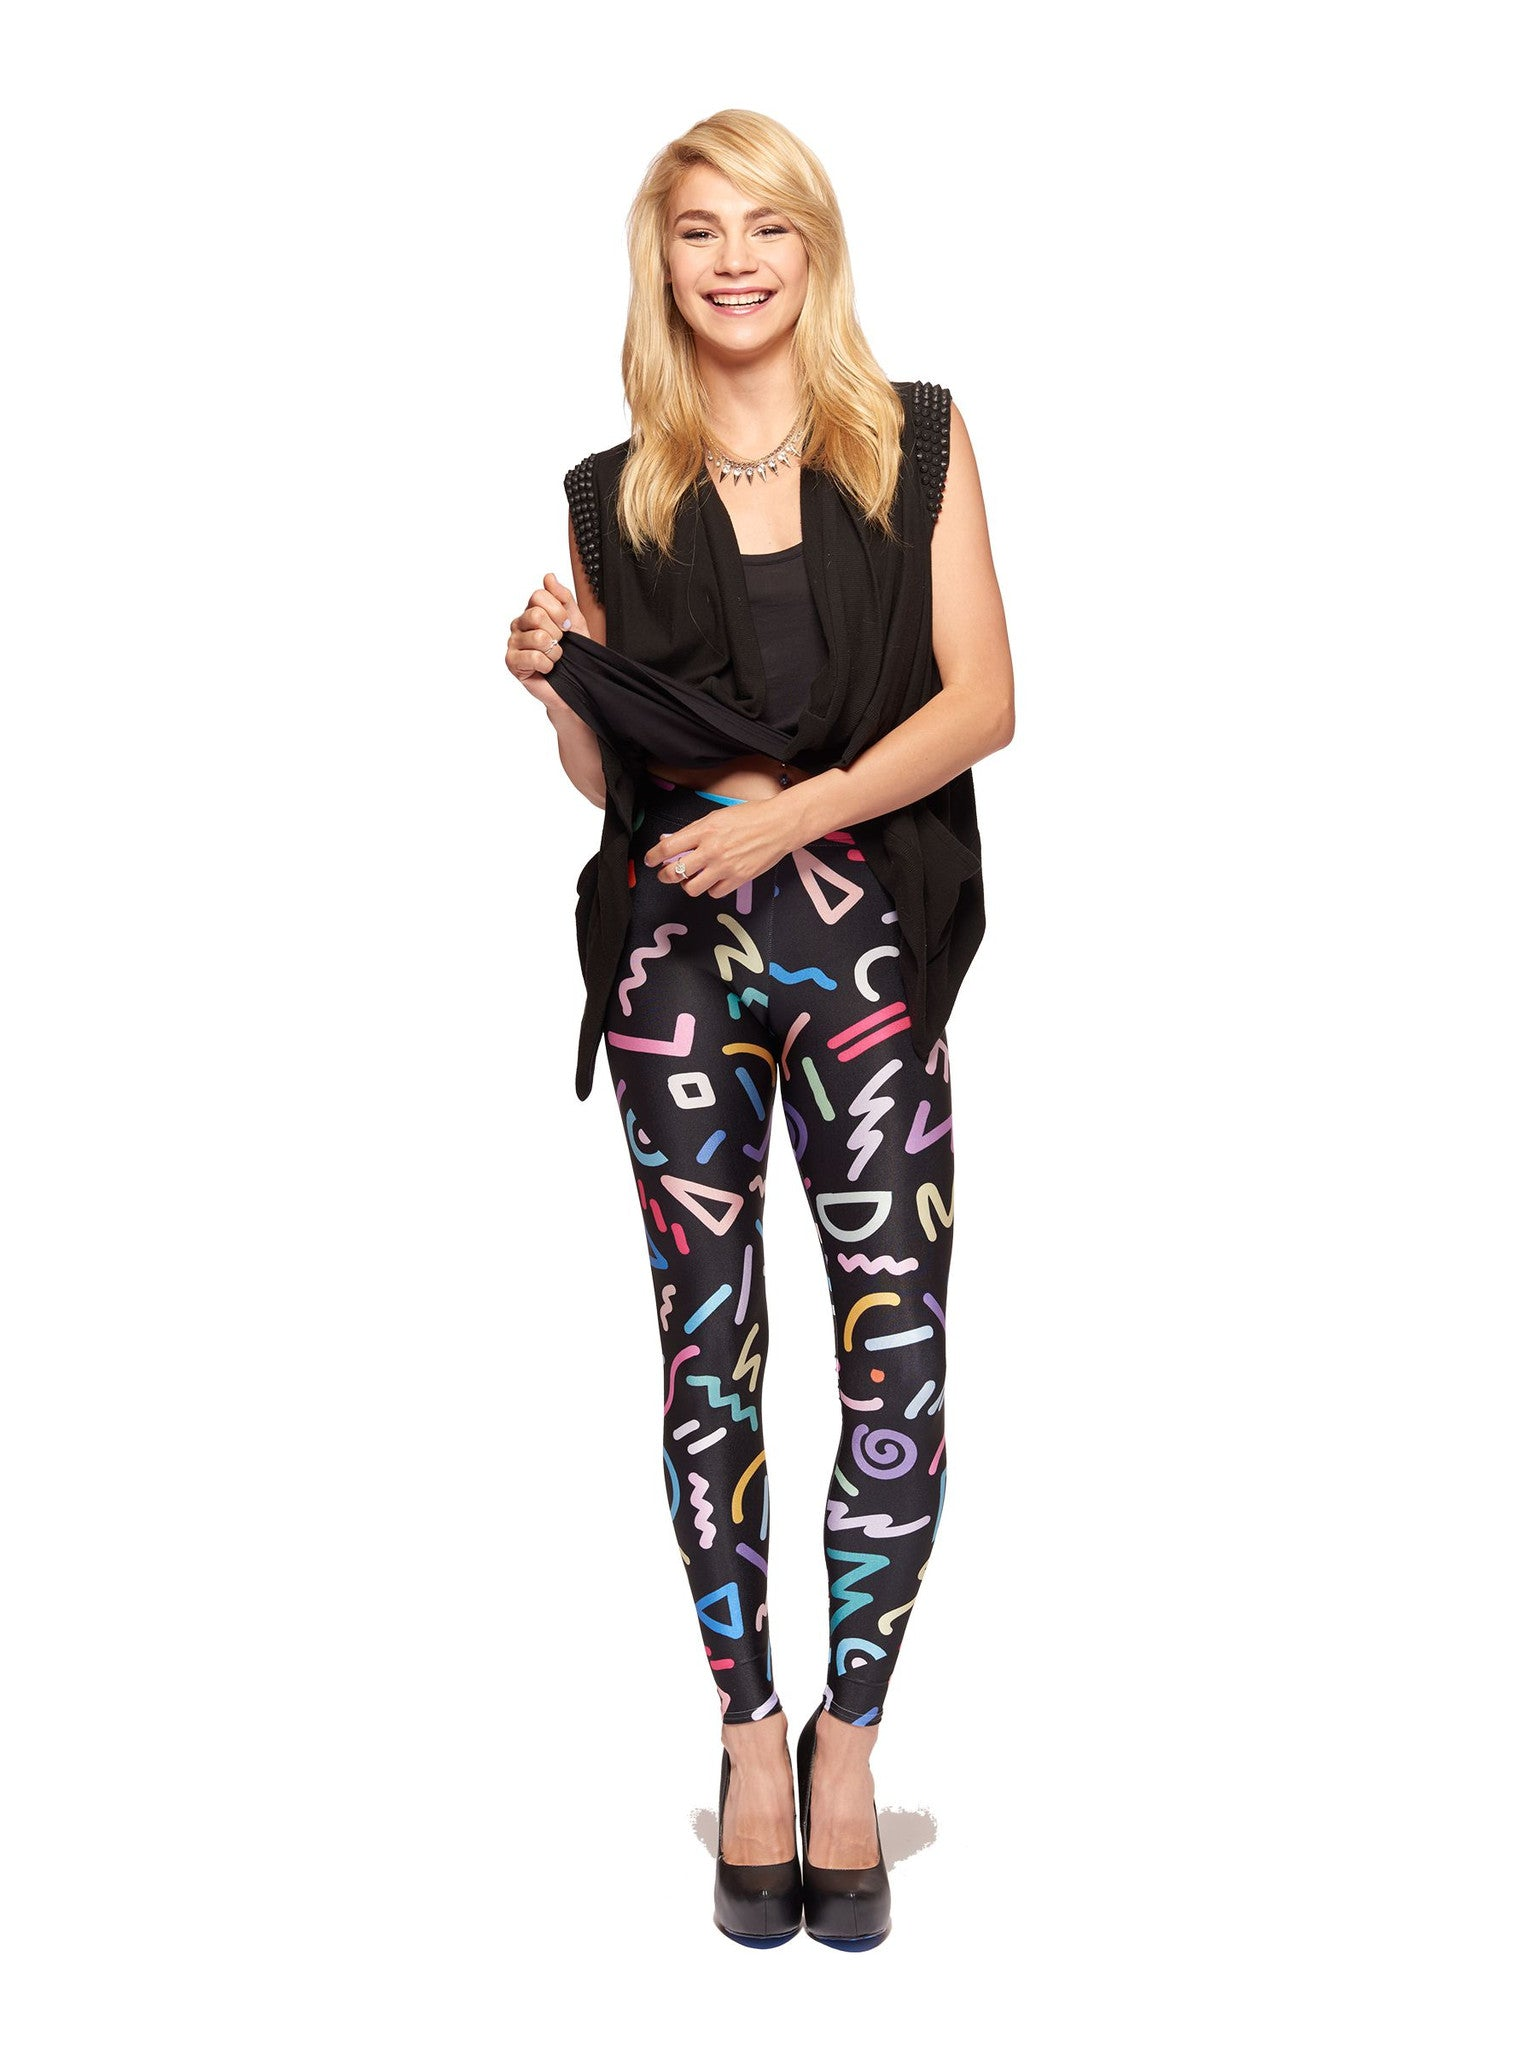 Neon Queen West Leggings - Nuvango  - 1